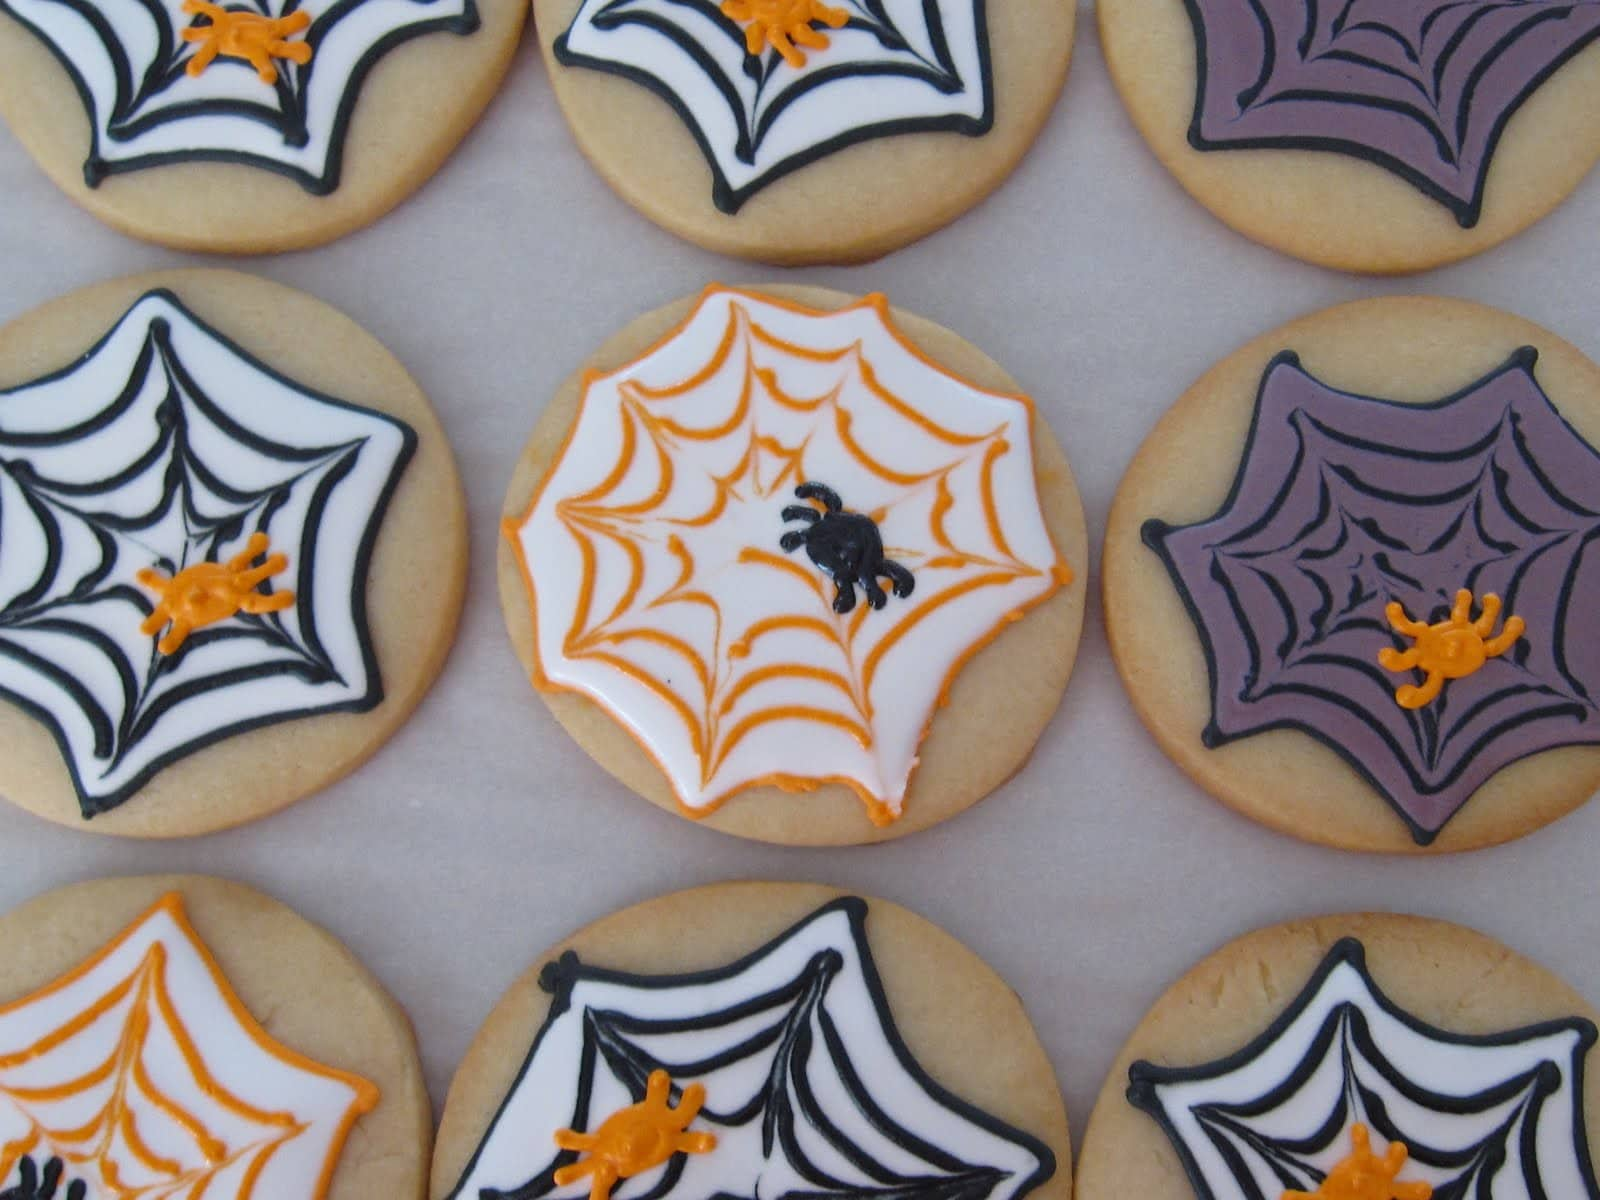 Overhead view of several spiderweb decorated frosted cookies